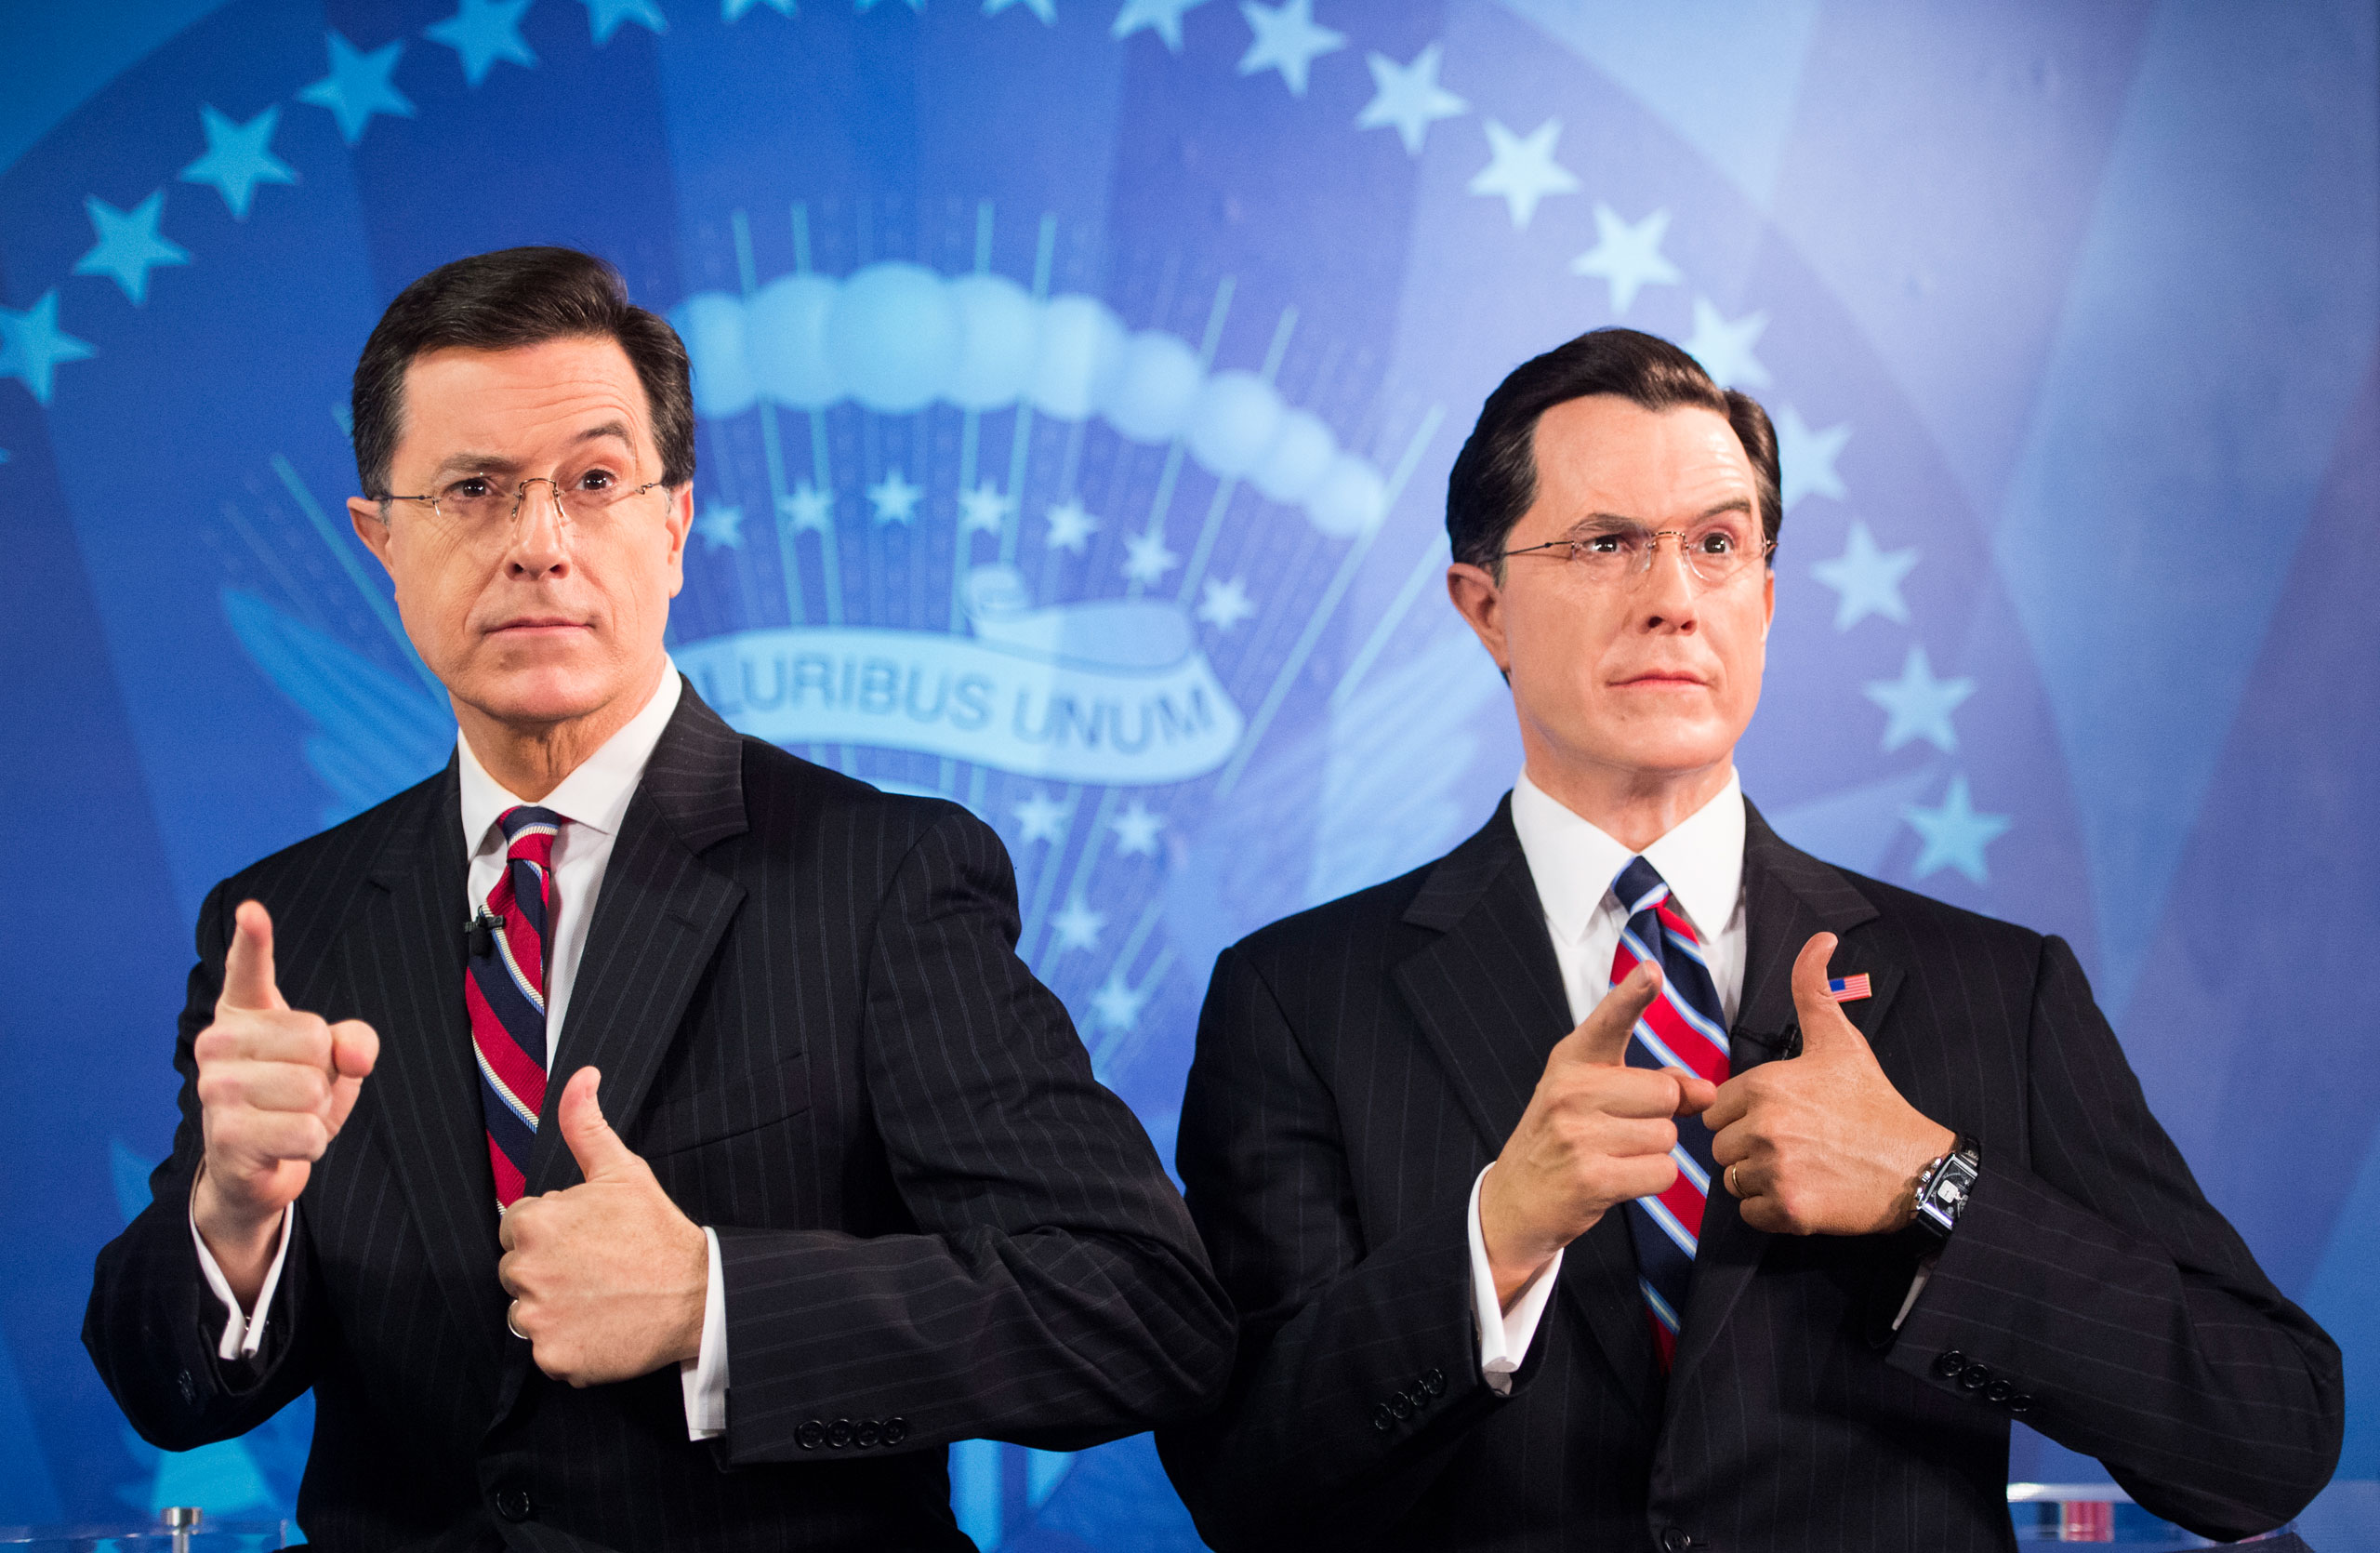 Stephen Colbert, left, poses with his wax figure at the Madame Tussauds wax museum in Washington on Nov. 16, 2012.